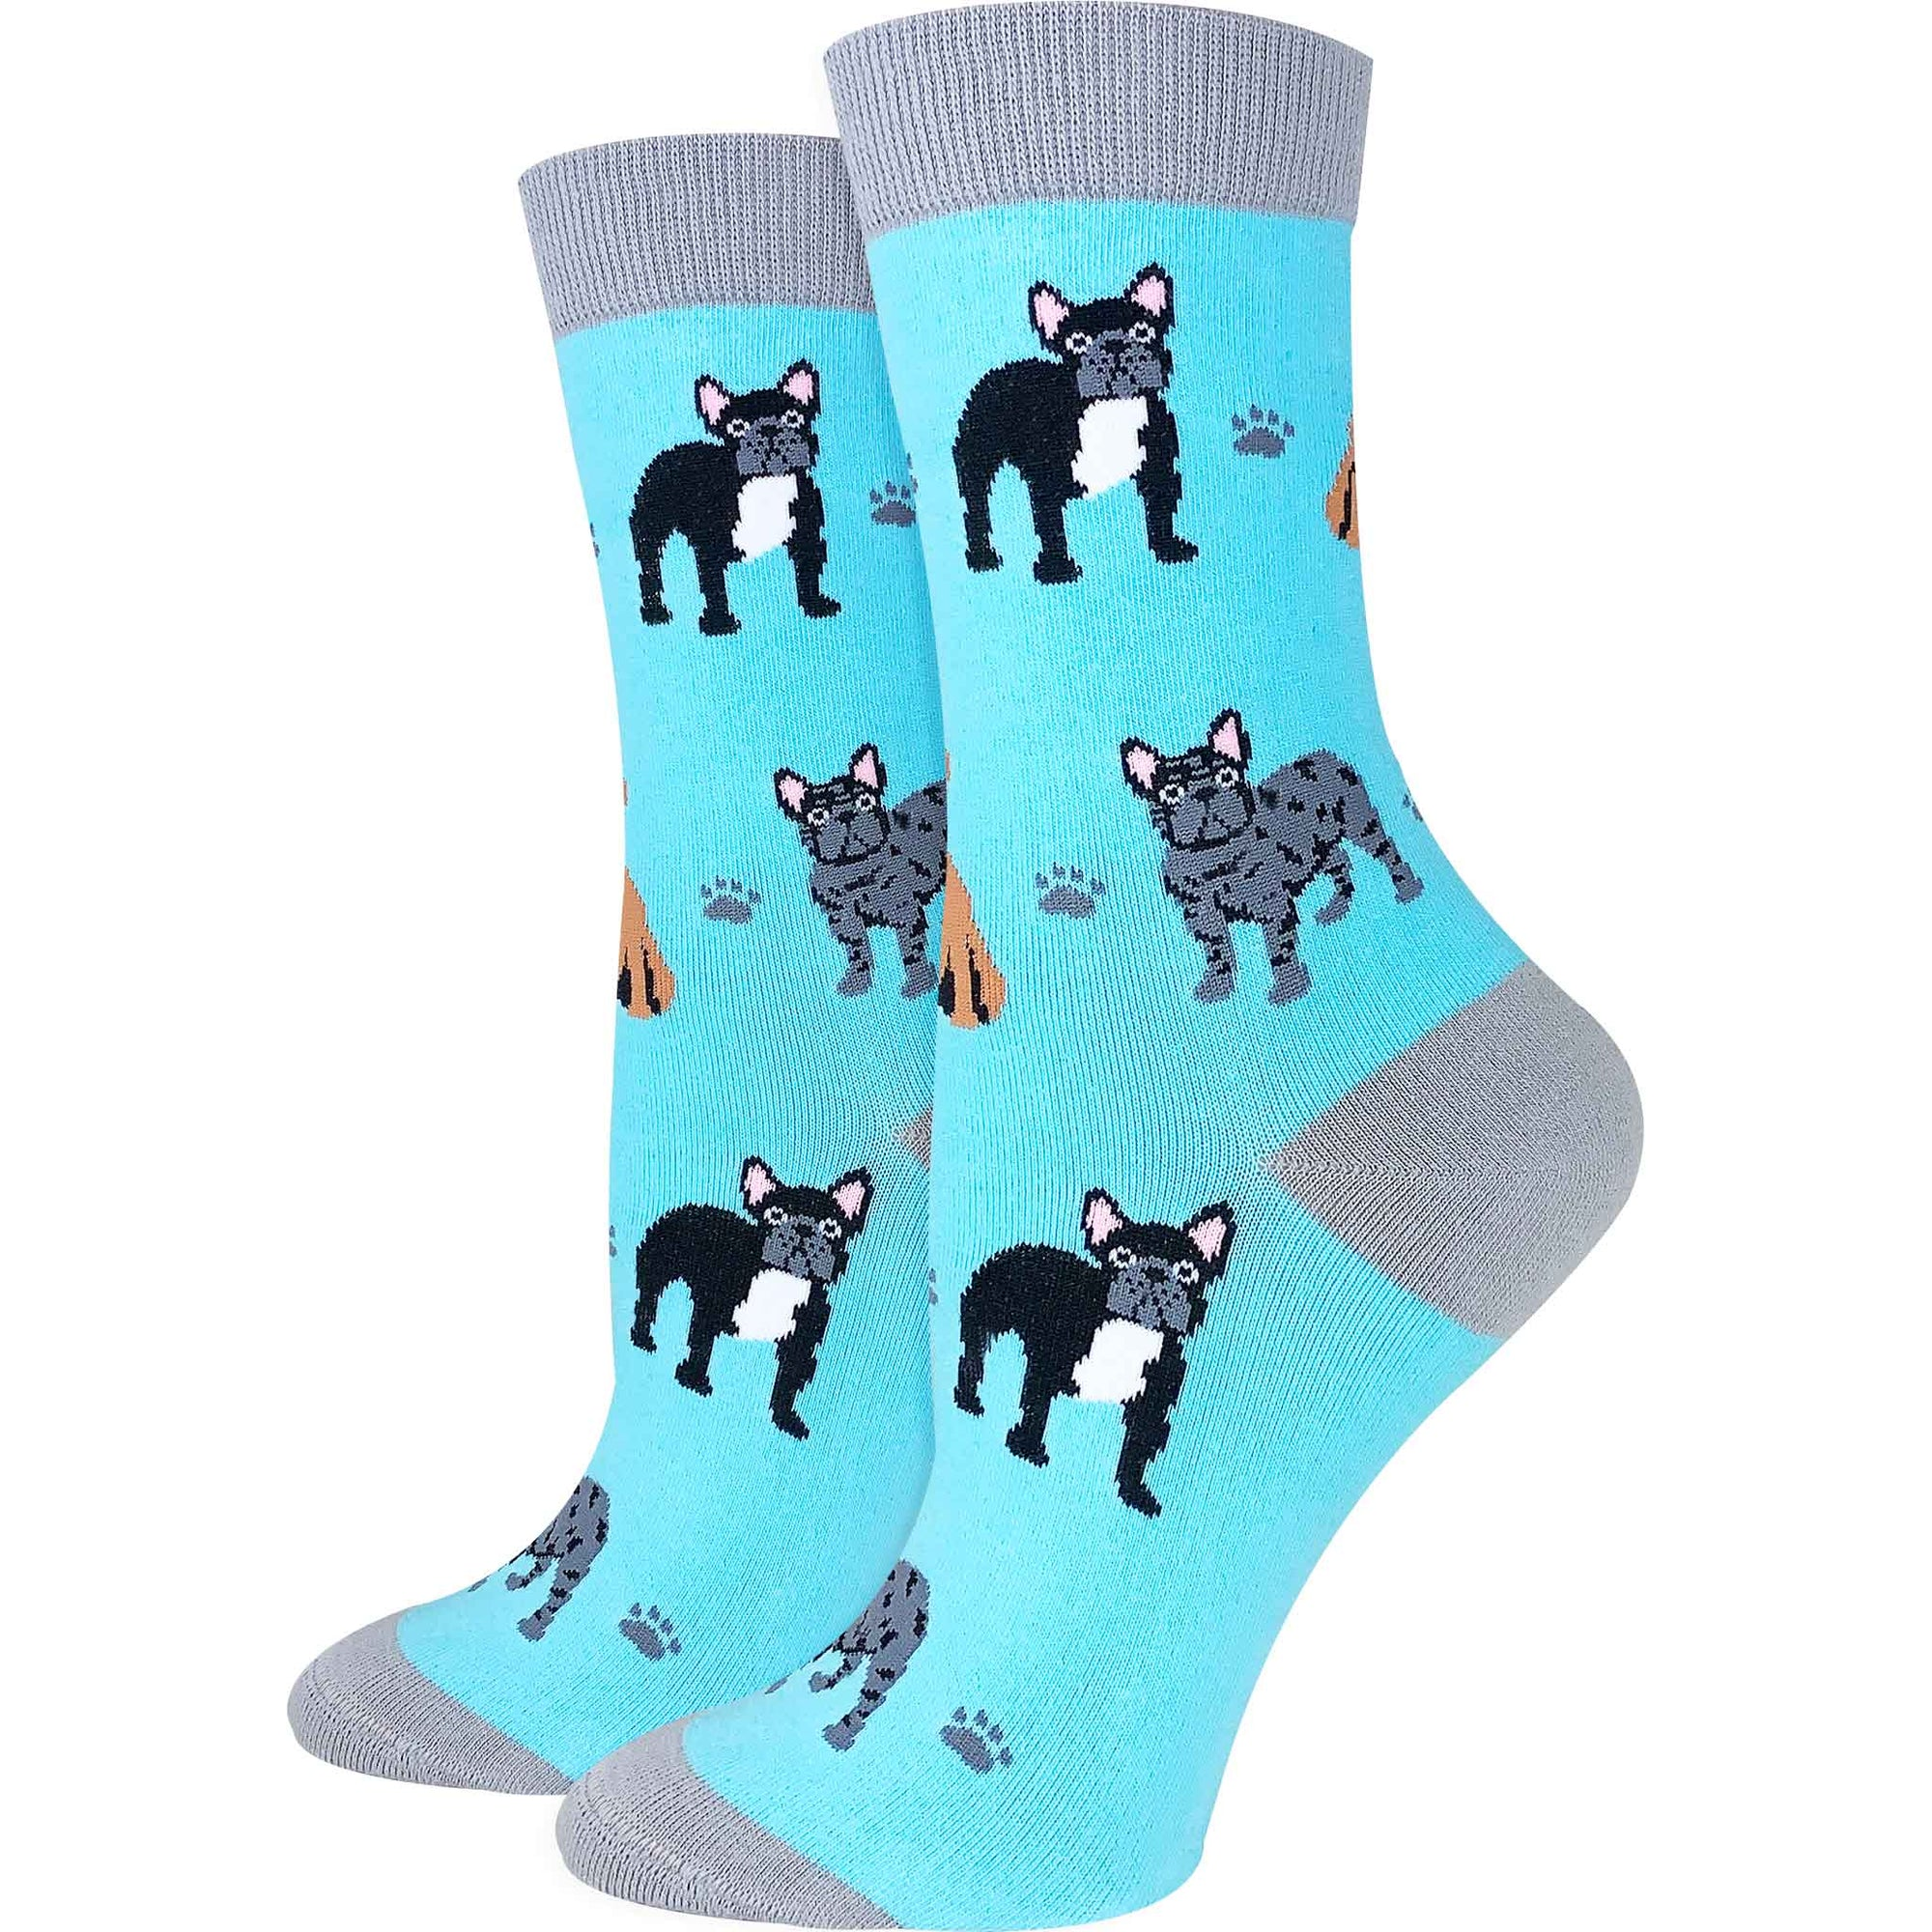 French Bulldog - Imagery Socks